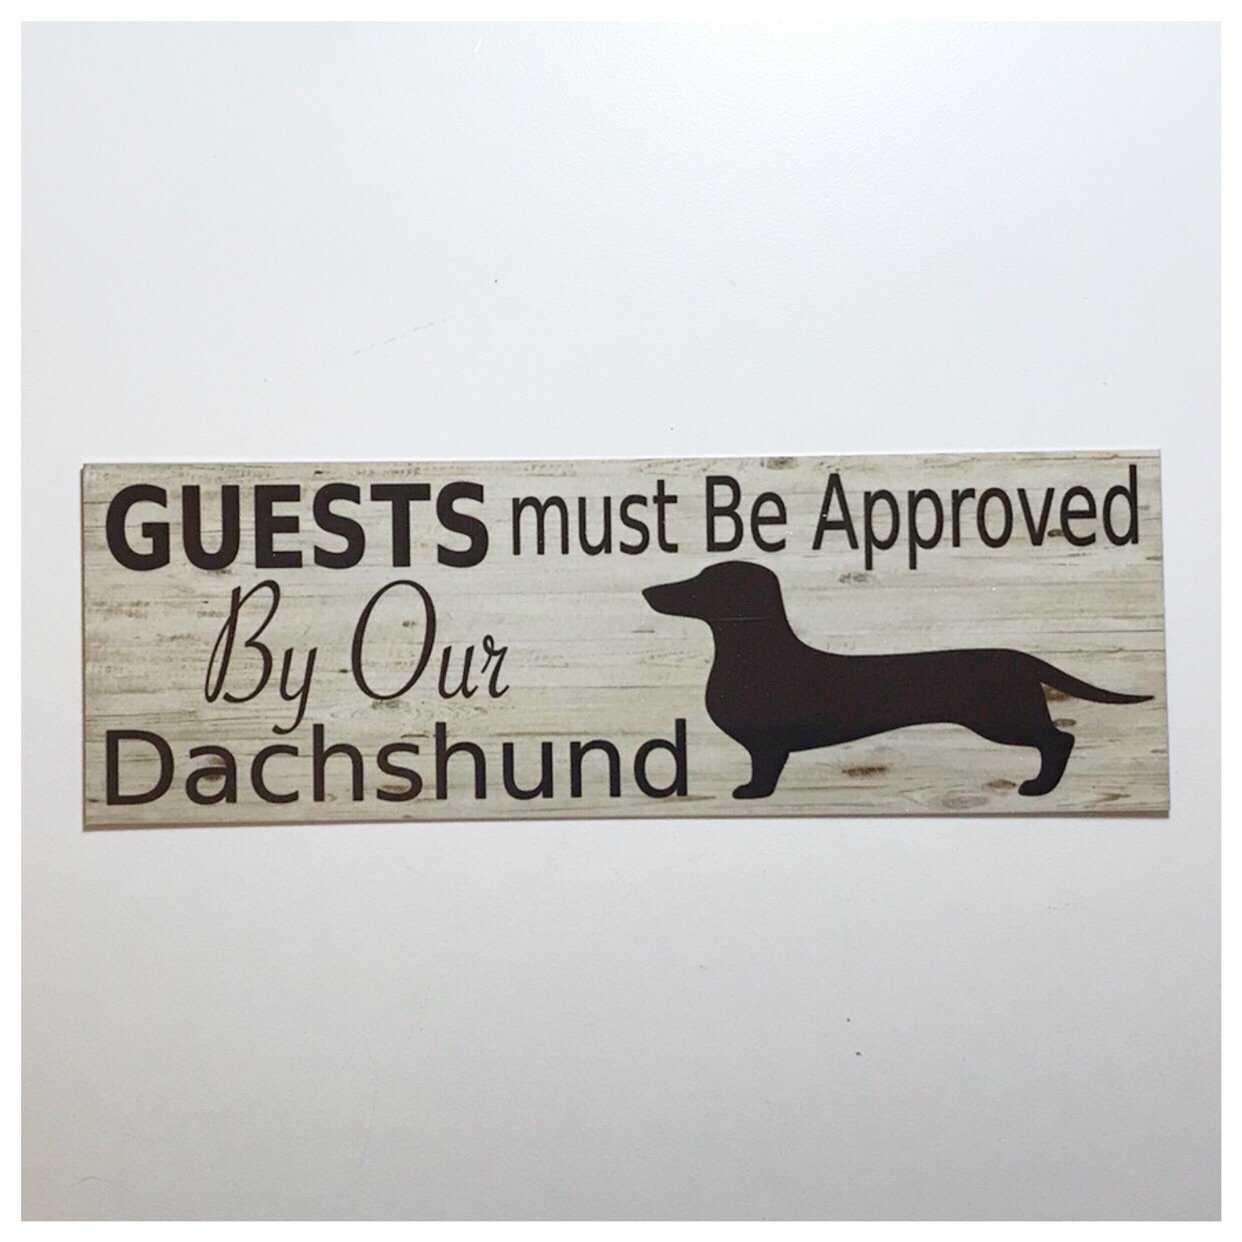 Dachshund Dog Guests Must Be Approved By Our Sign